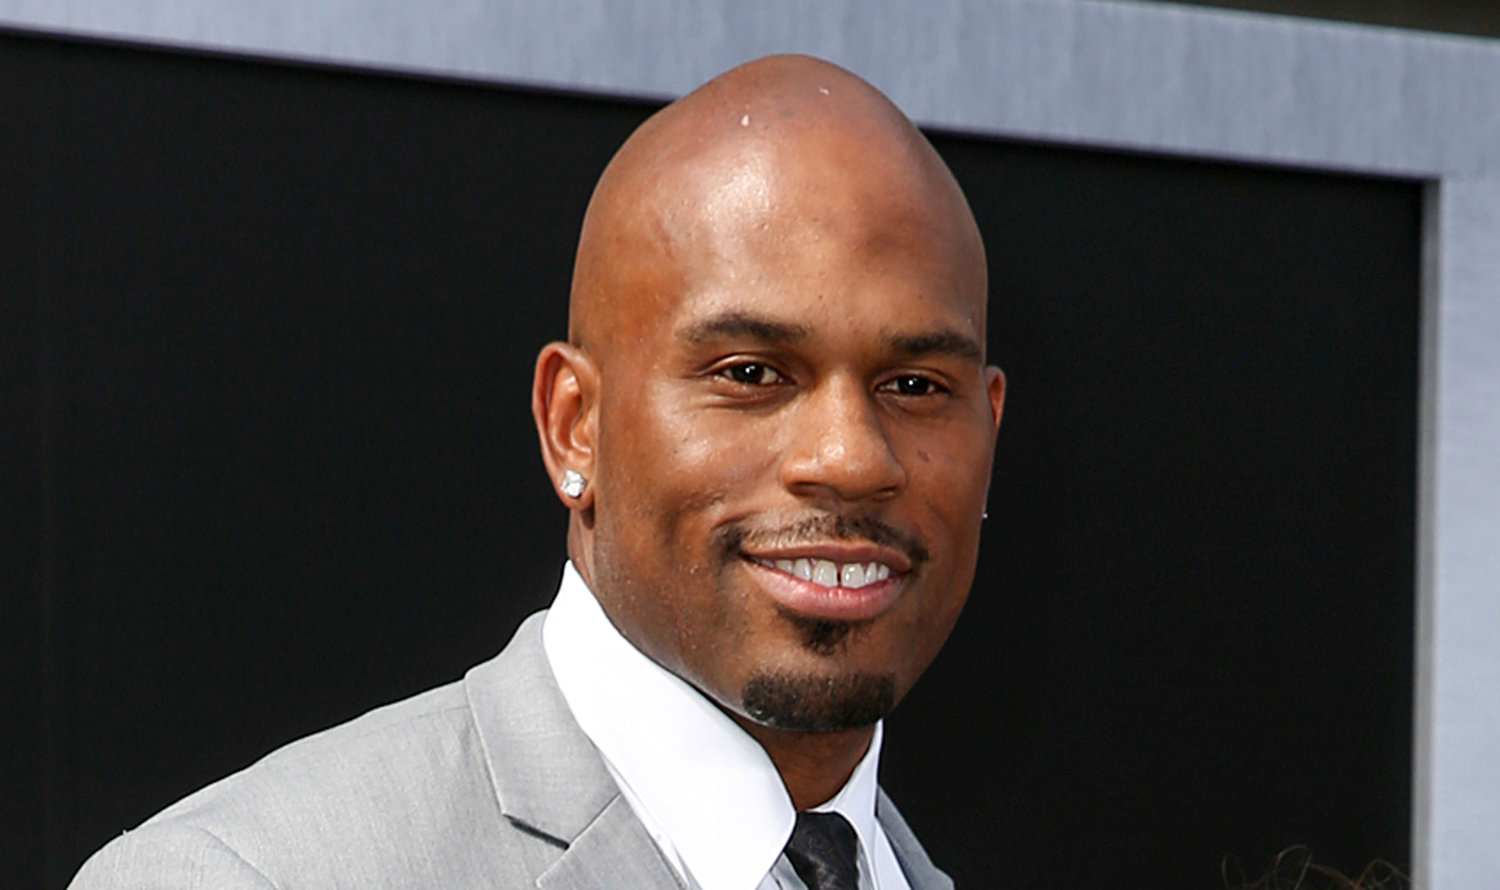 "FILE - In this June 28, 2015, file photo, WWE wrestler Shad Gaspard arriving at the Los Angeles premiere of ""Terminator Genisys"" at the Dolby Theatre in Los Angeles. The former World Wrestling Entertainment pro remained missing Tuesday, May 19, 2020 after being swept out to sea while swimming with his young son over the weekend off Southern California, police said. Gaspard's 10-year-old son Aryeh was rescued and several other swimmers made it out of the water safely after they were caught in a rip current Sunday afternoon at Venice Beach in Los Angeles. (Photo by Rich Fury/Invision/AP, File)"